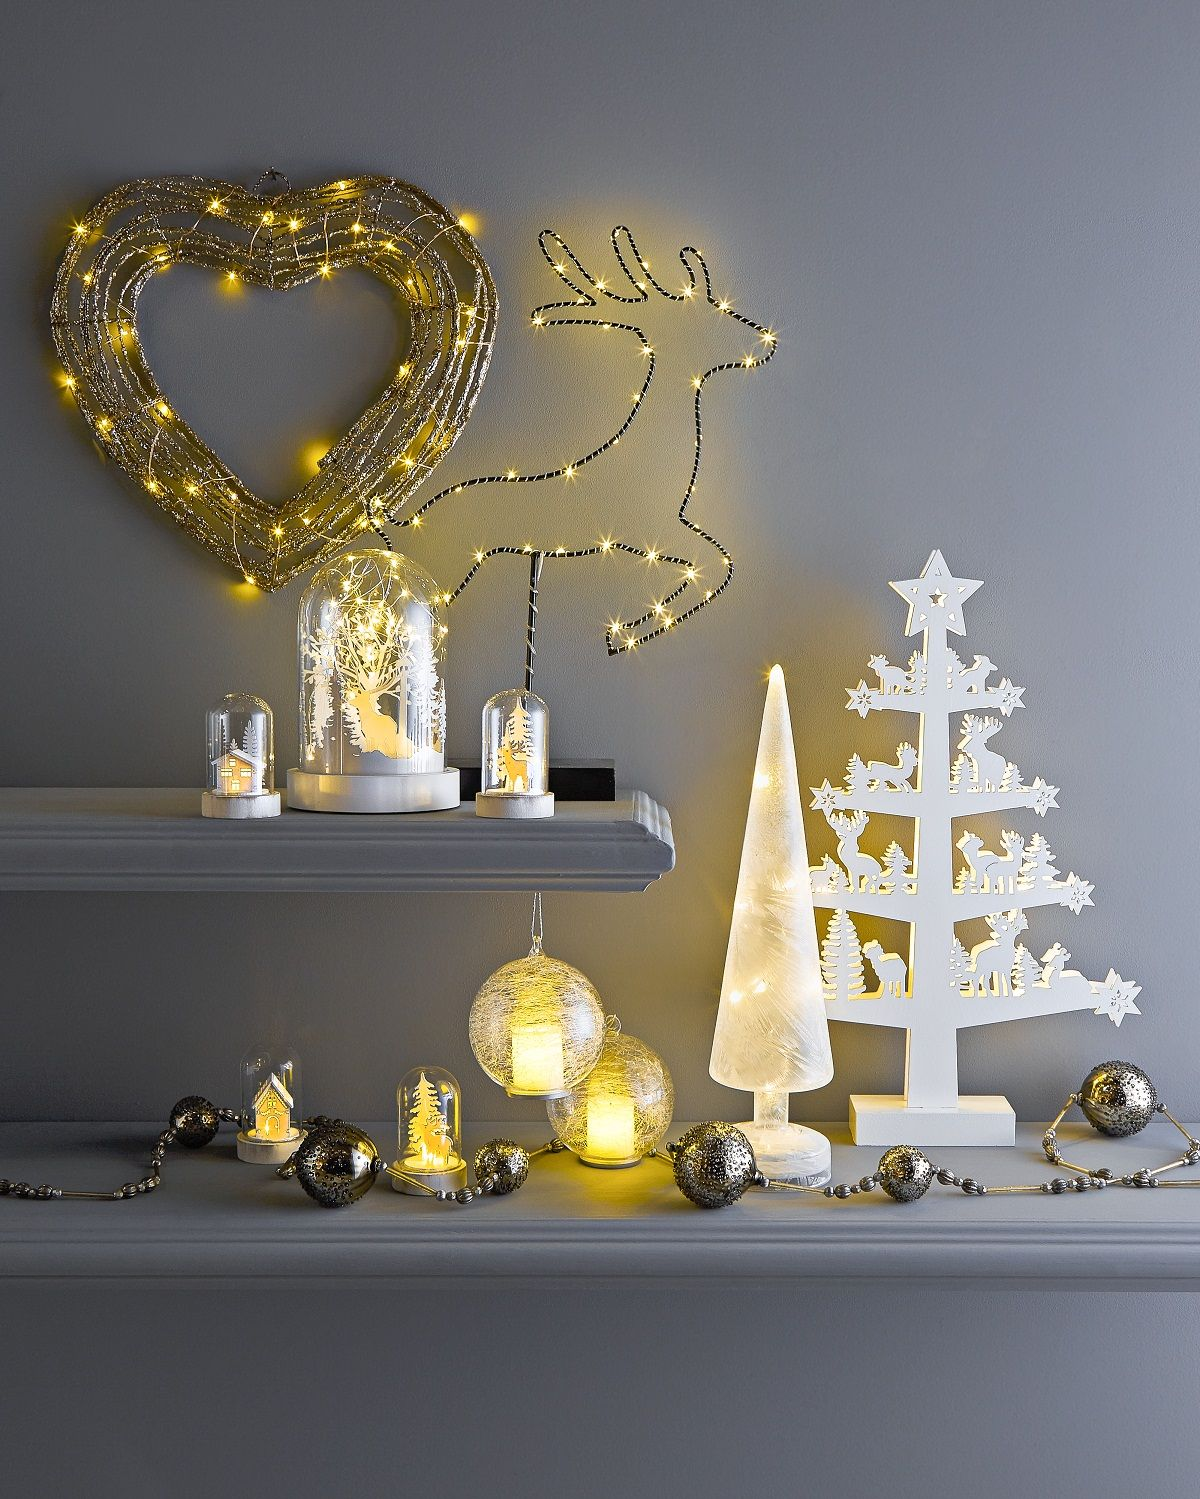 Christmas Shop Decorations Ideas Inspiration Christmas Decorations 2017 Shop Decoration Christmas Magic